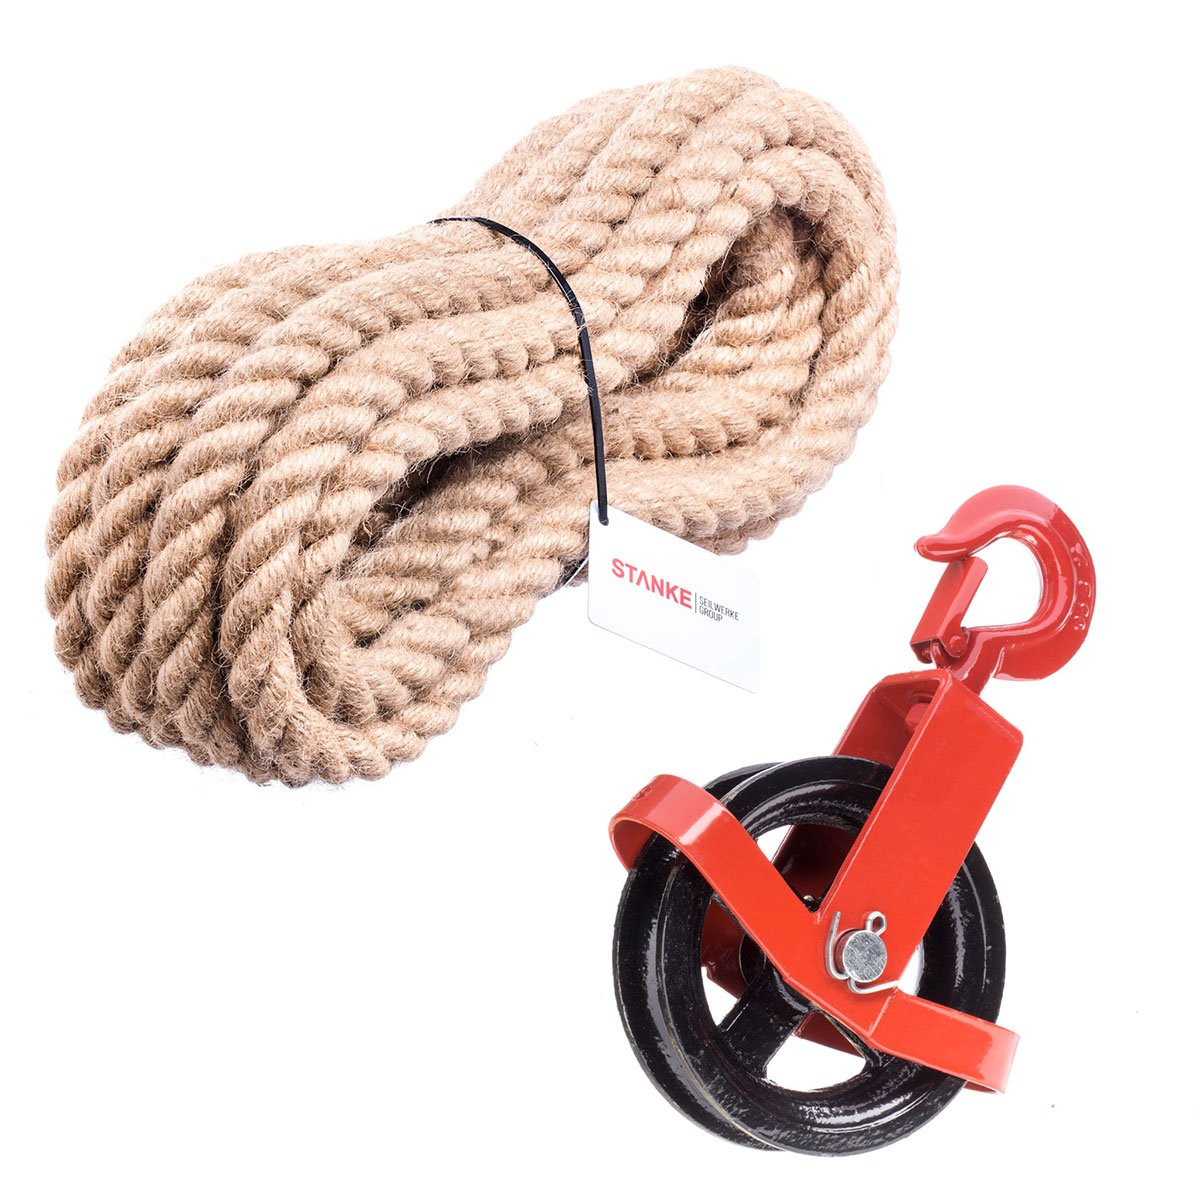 Jute Rope 35 m Seilwerk STANKE 180 mm Locking Pulley Block With A Hook 115 ft. 12 mm Turnstile Winch Roll Building